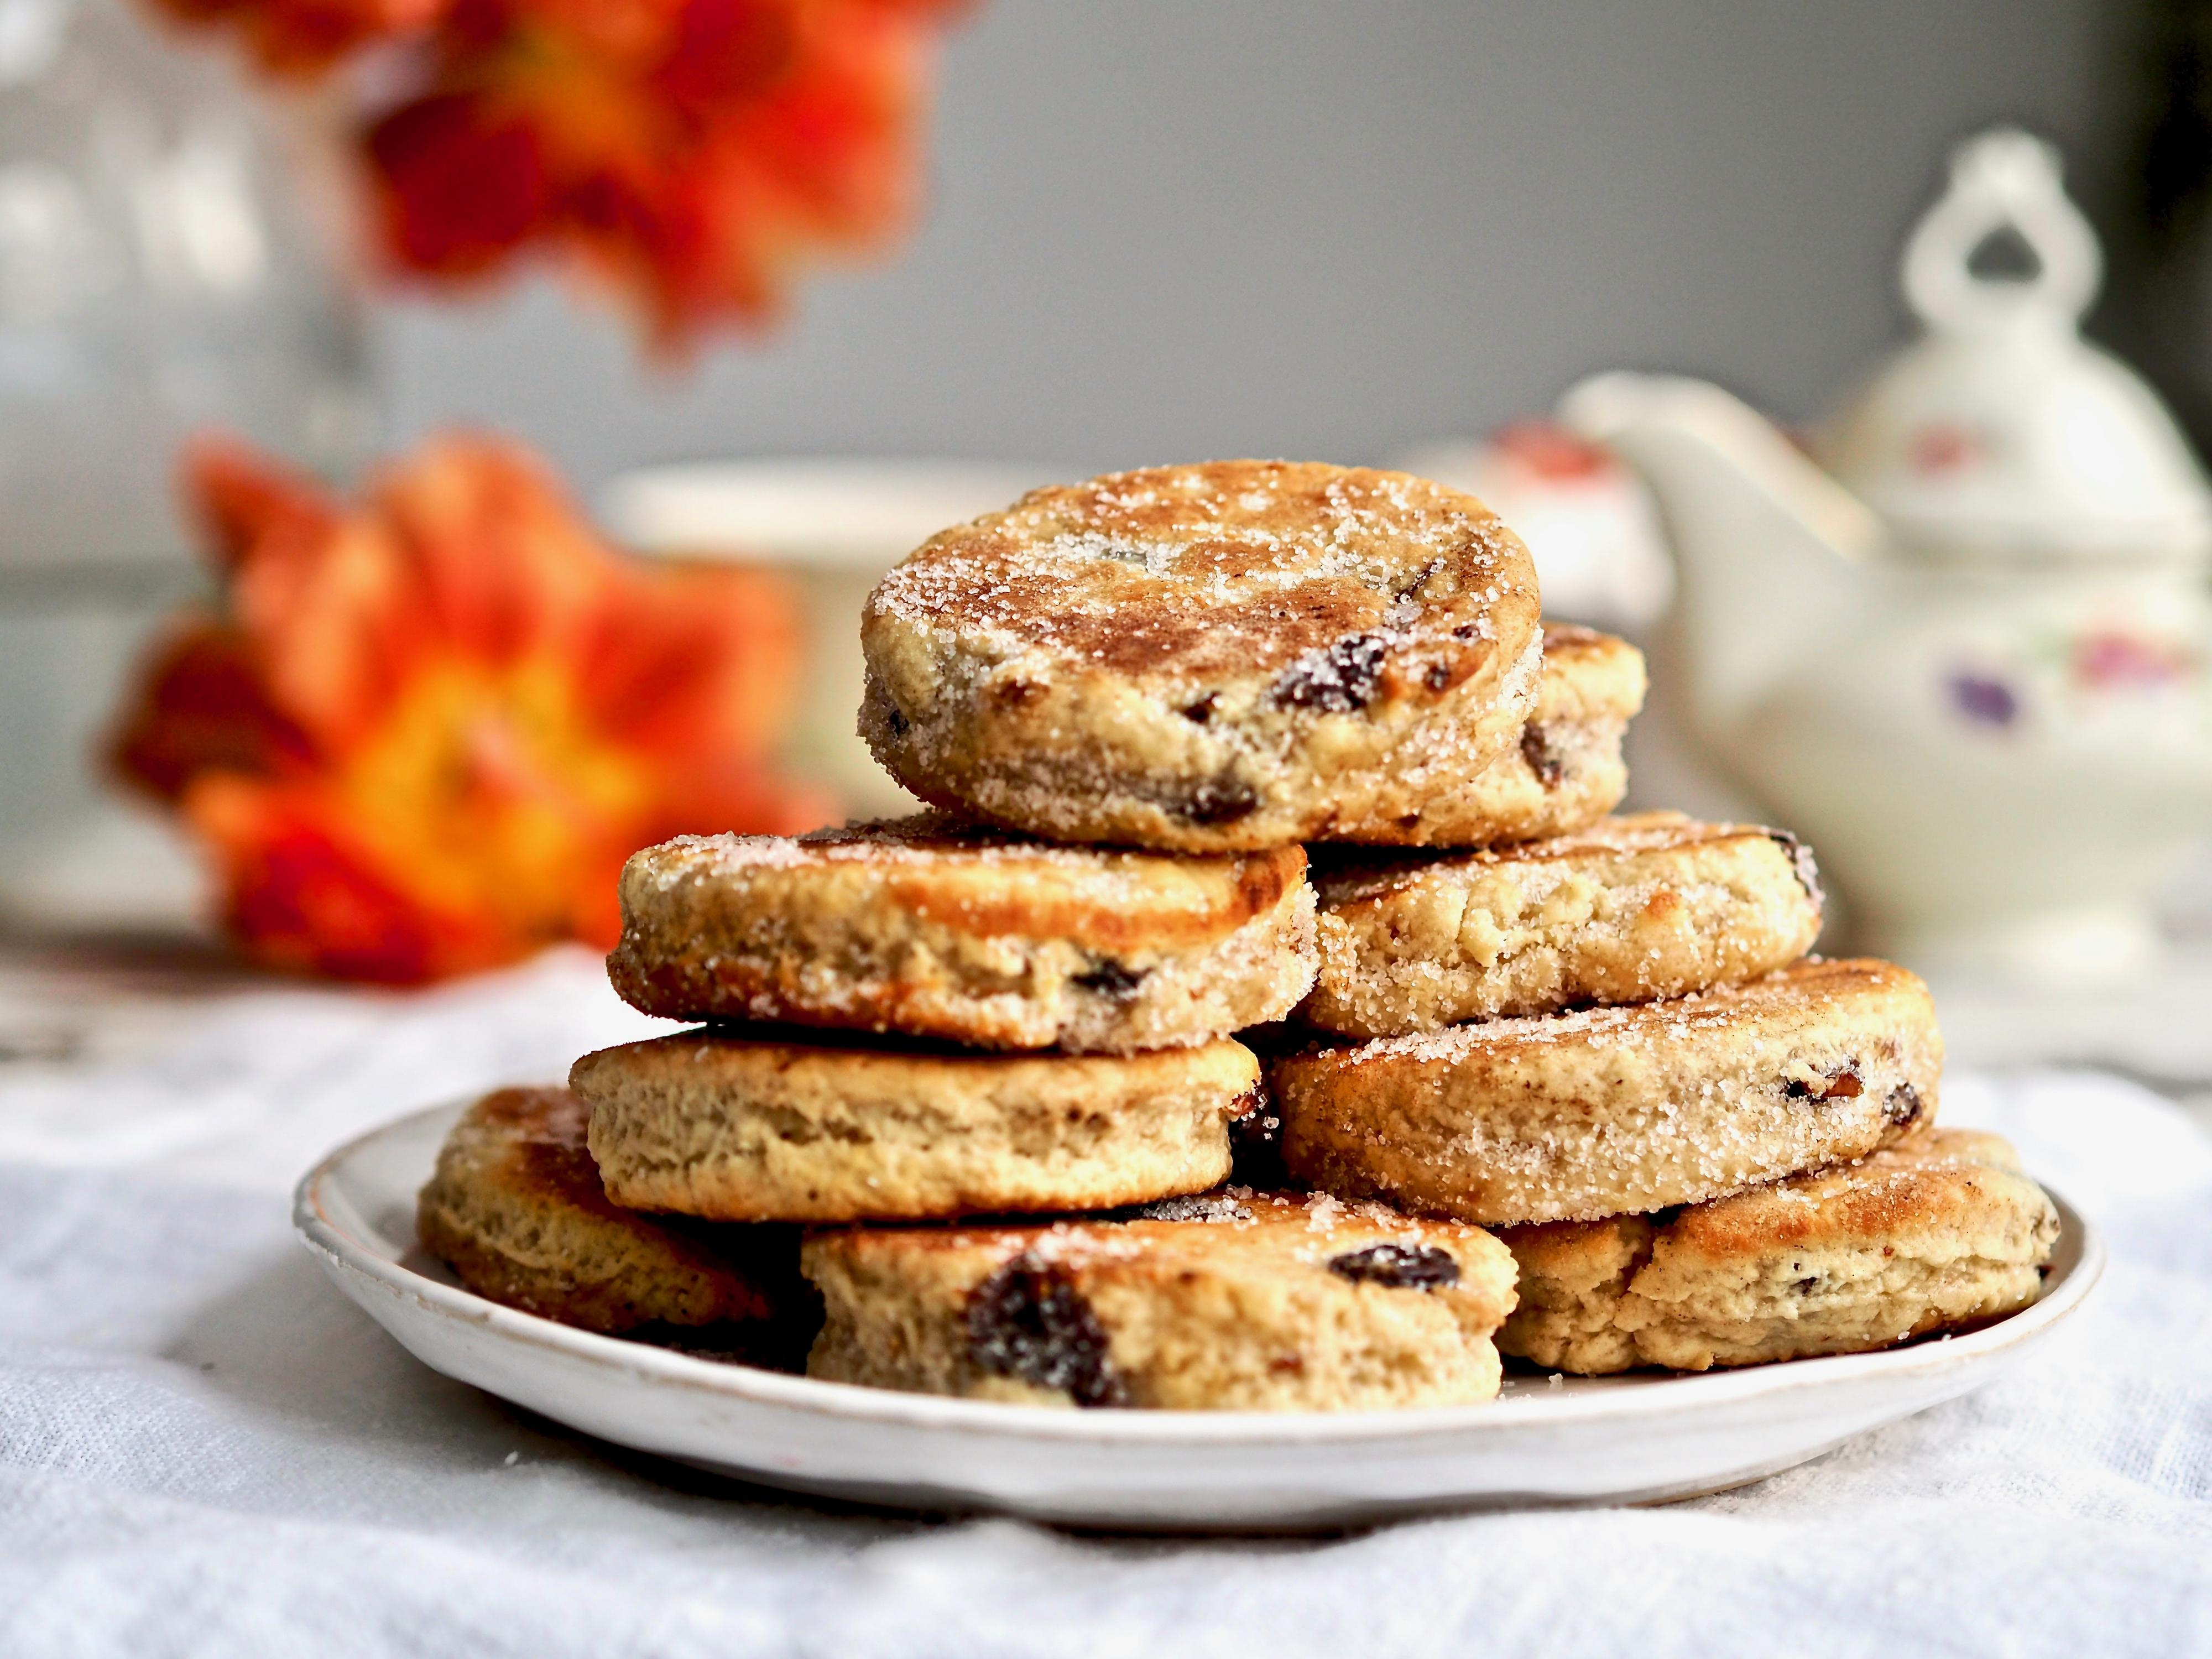 Welsh cake - resepti